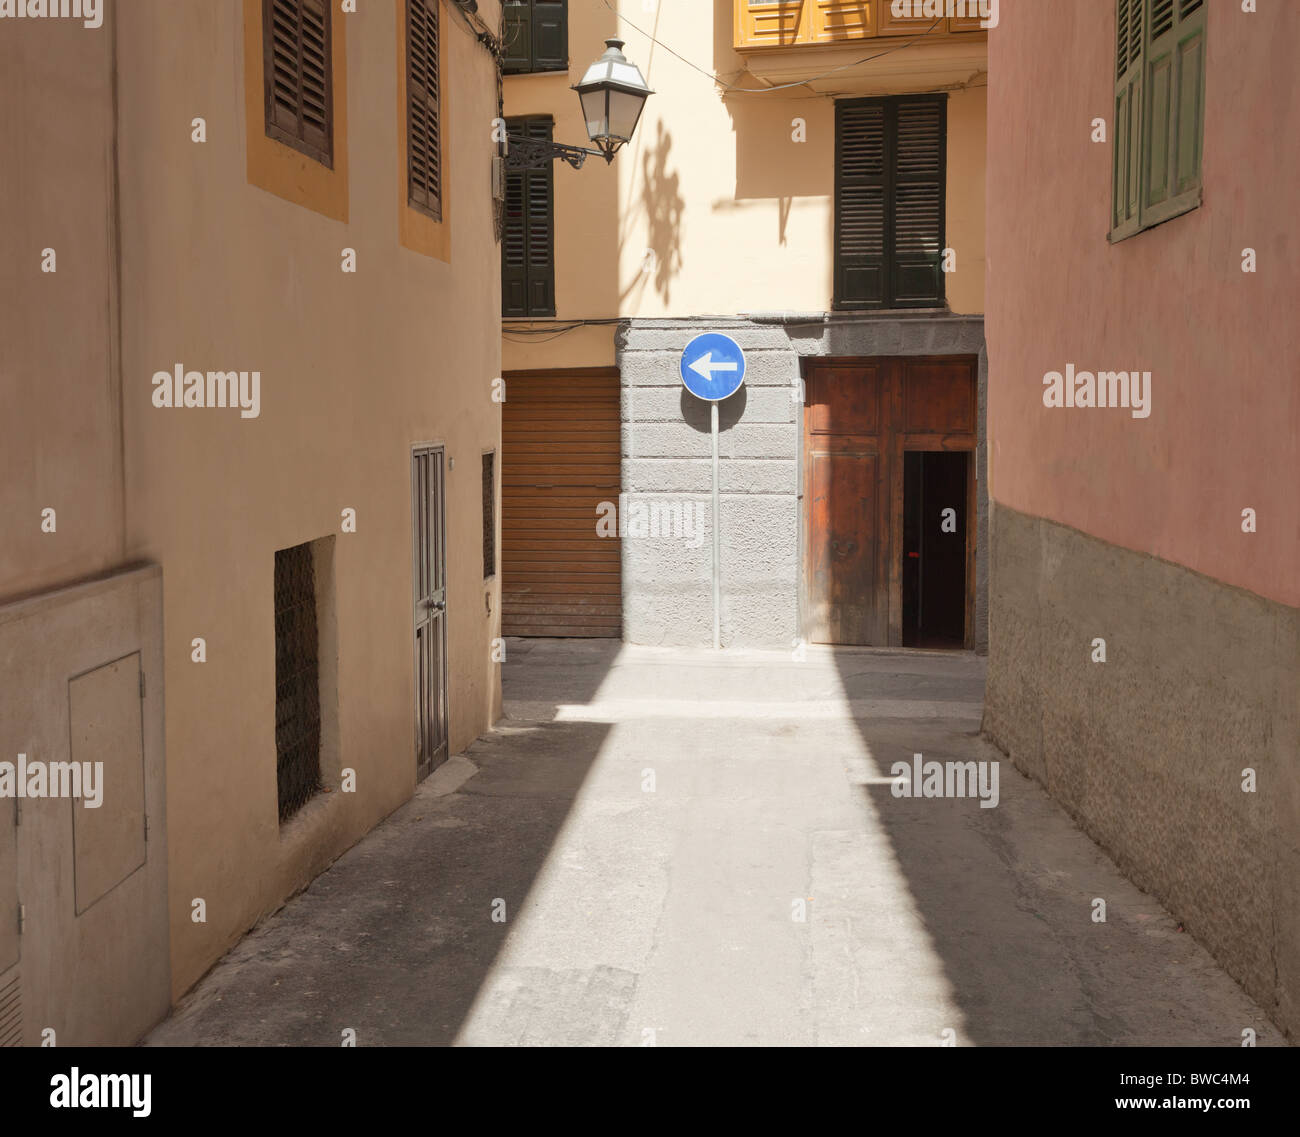 Street with direction sign - Stock Image